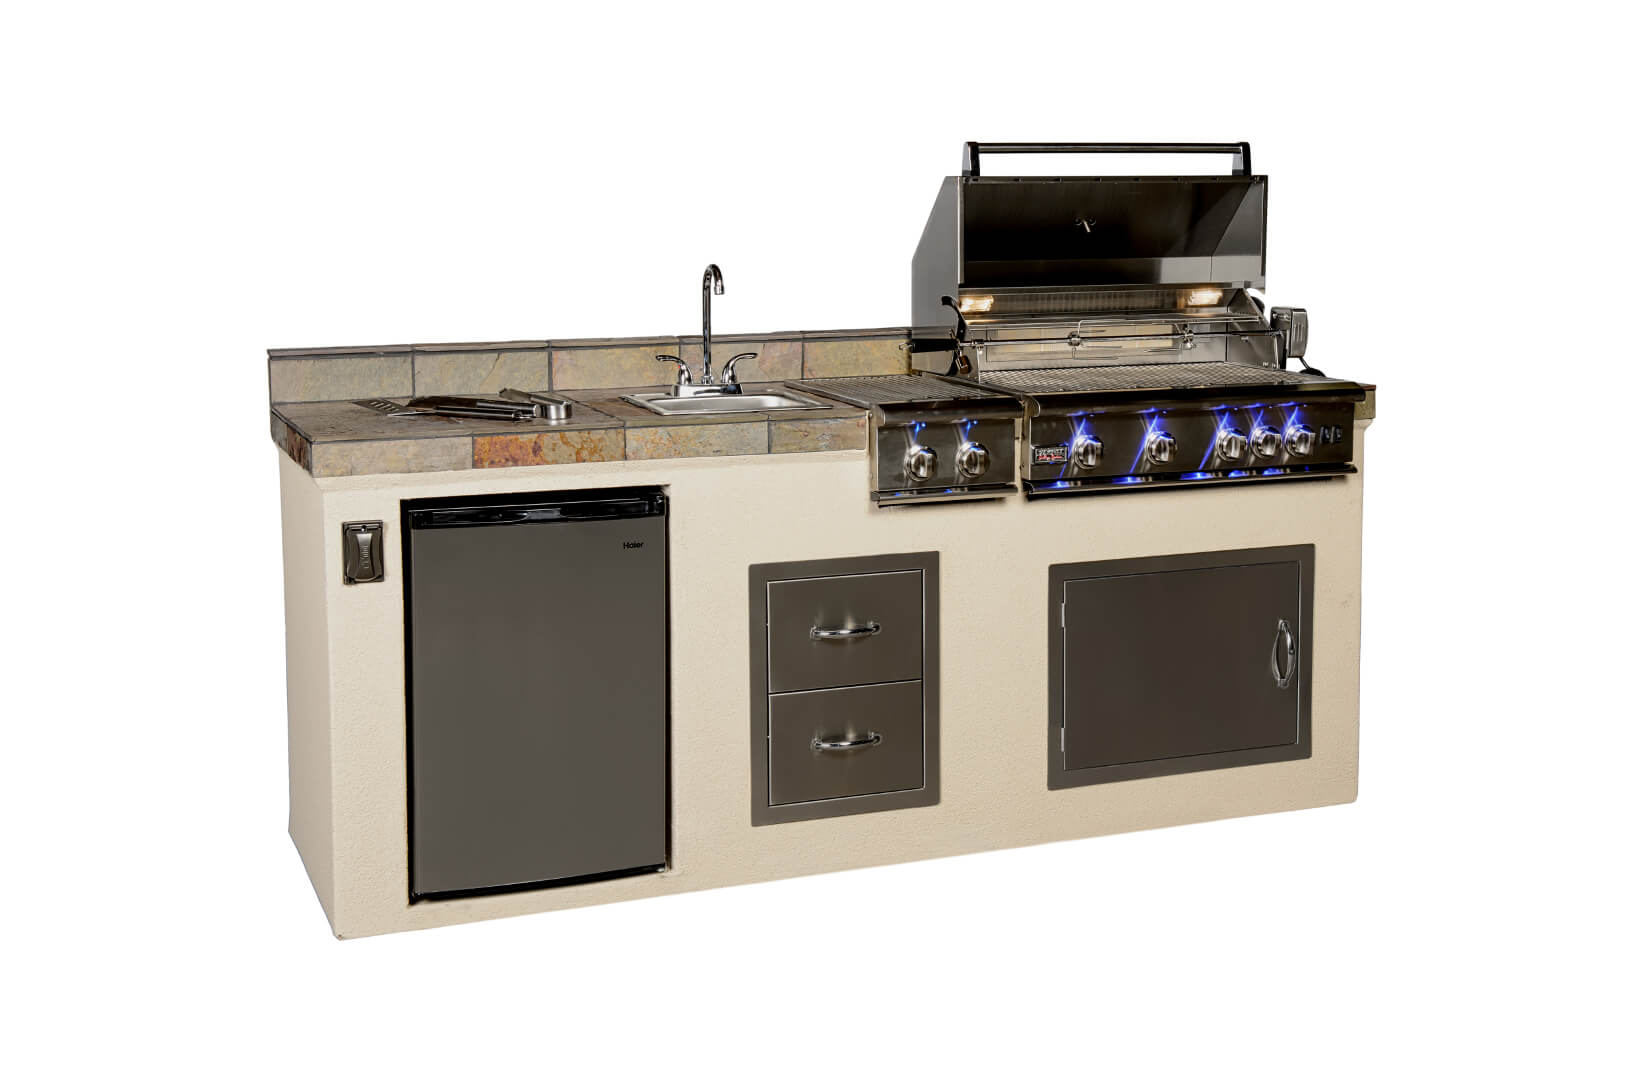 Paradise Grills Direct Outdoor Kitchens - Build Your Own: GX-8 FlexBuild